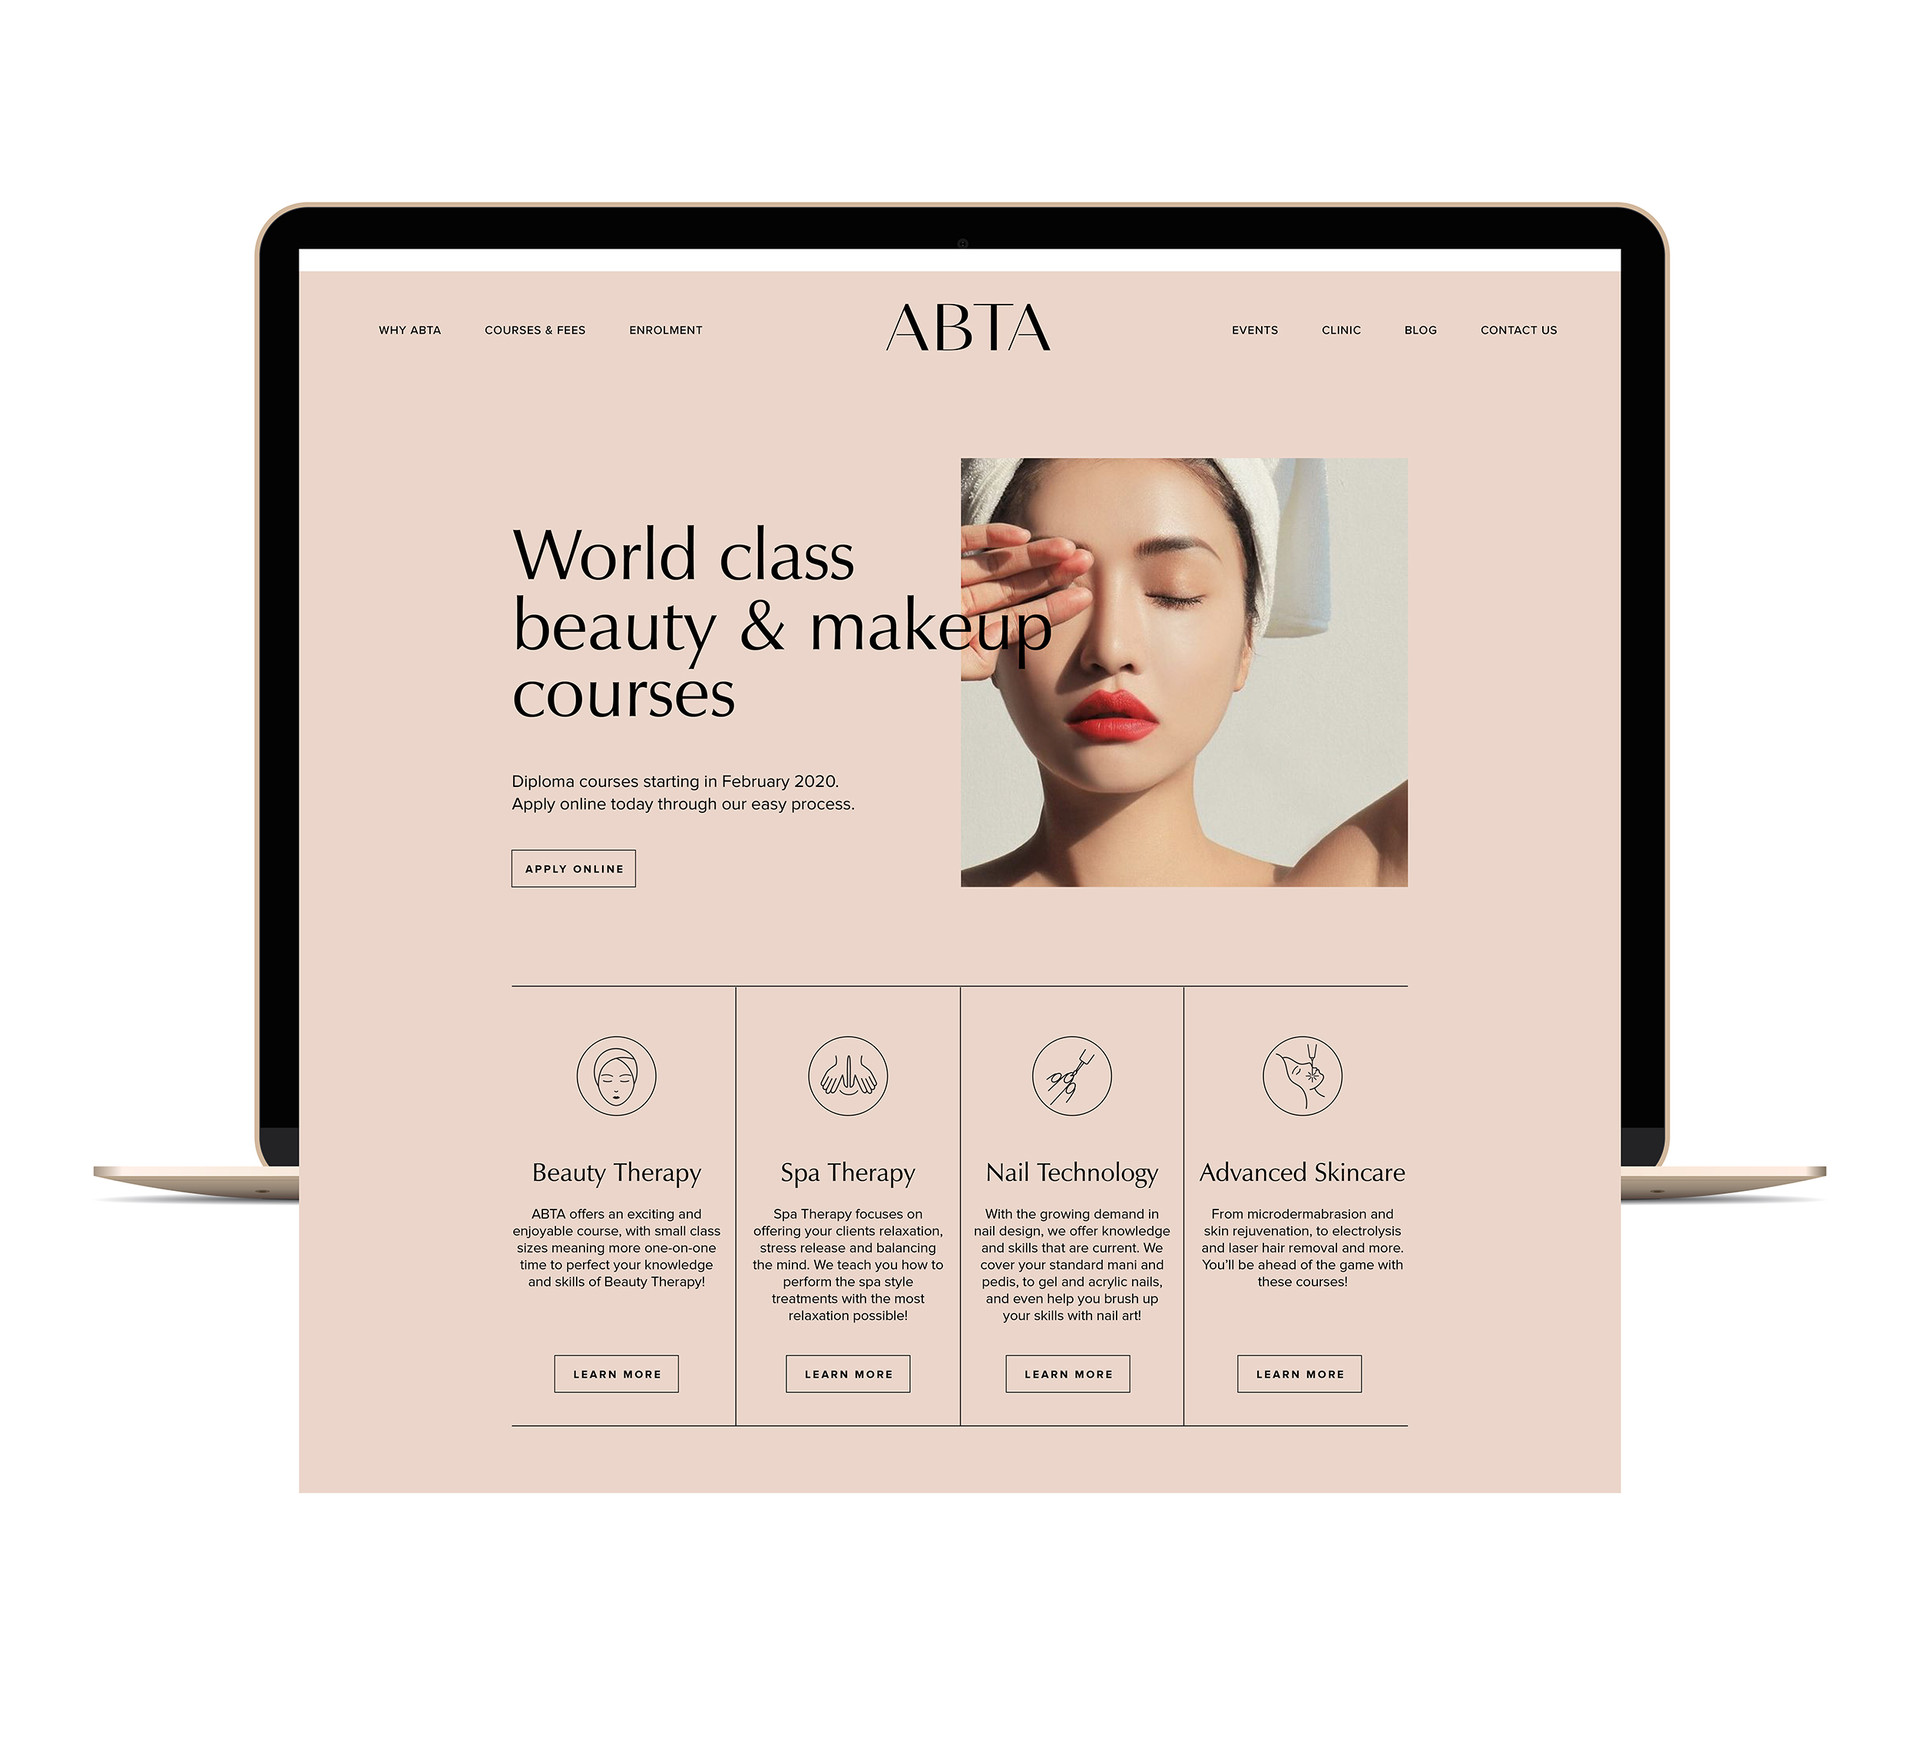 191218_ABTA_Brand-Development_Website-HP